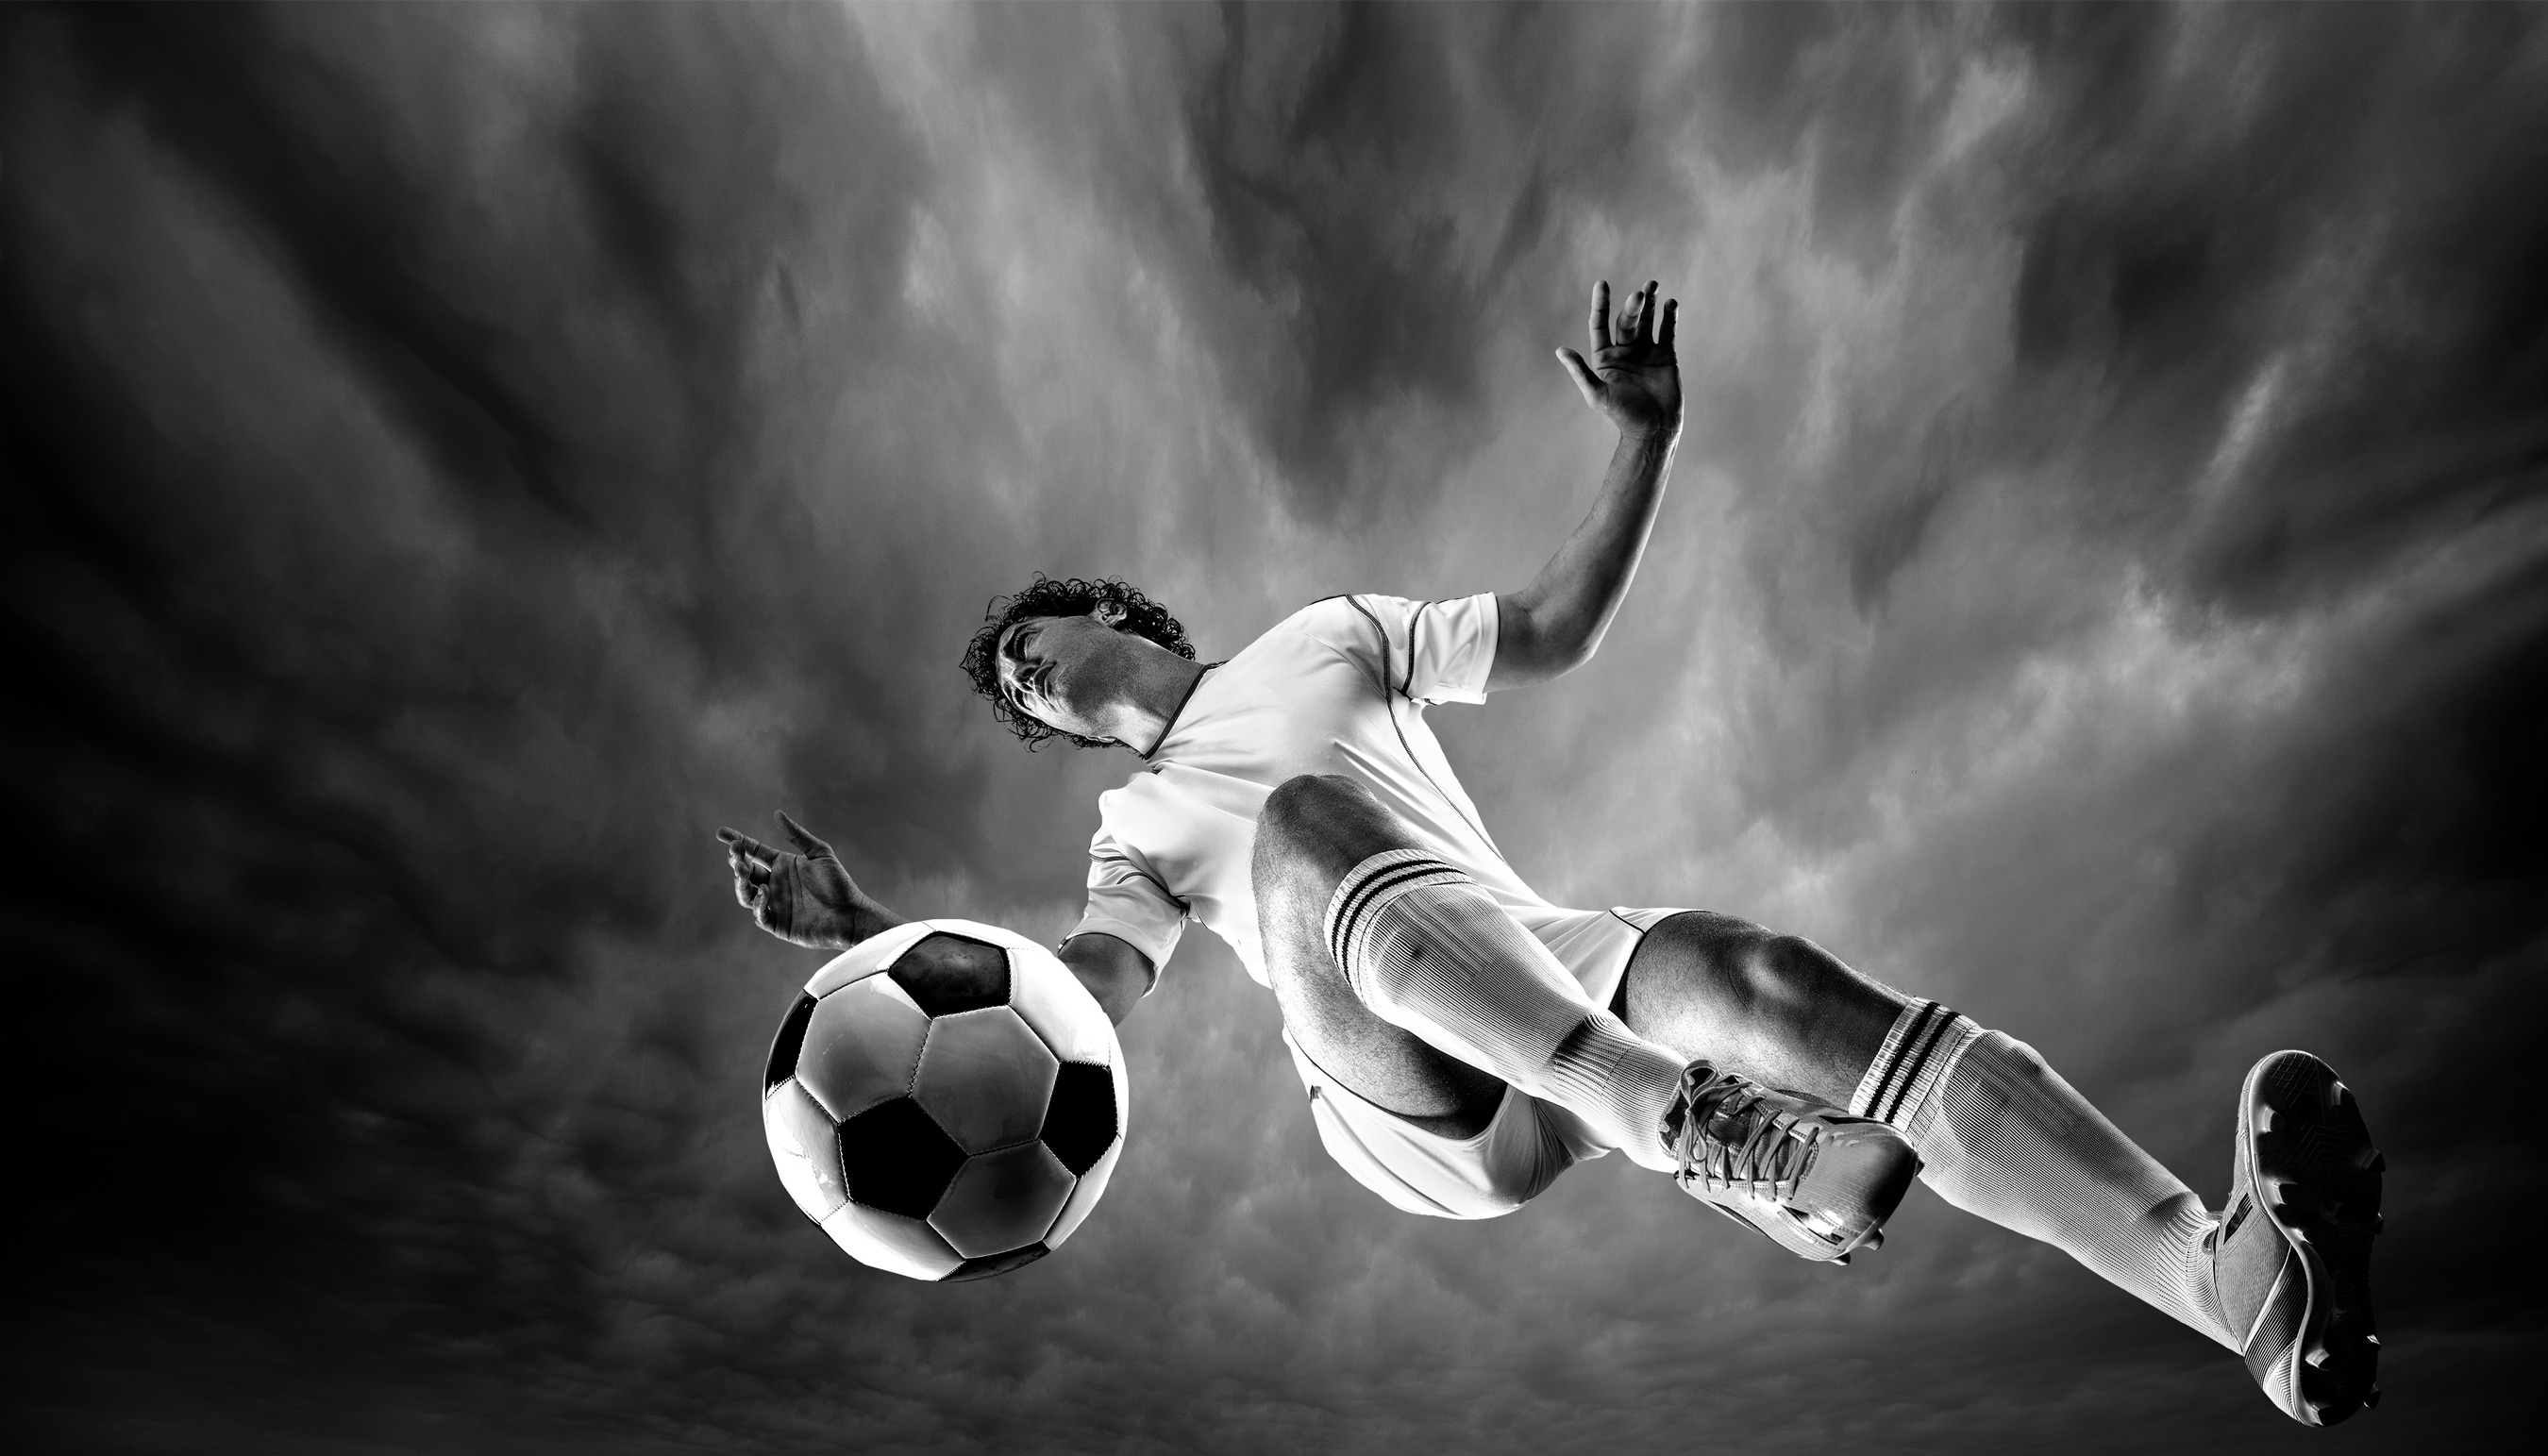 Soccer player kicking ball | Dovis Bird Agency Photography